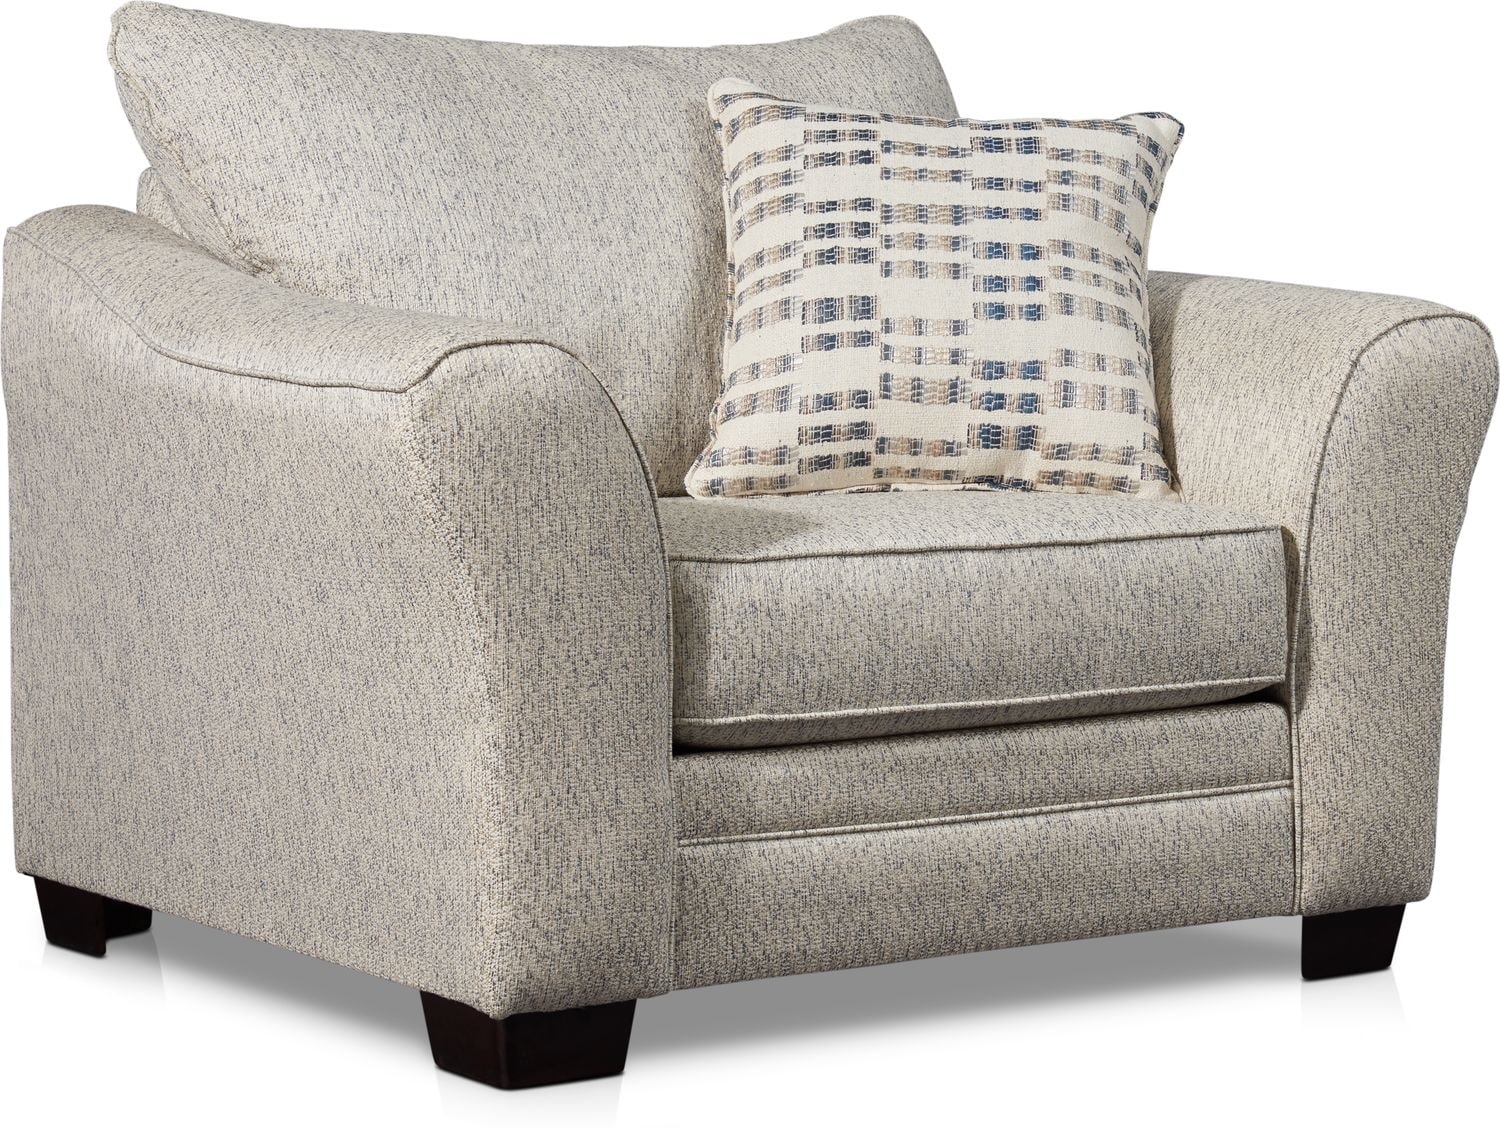 Living Room Furniture - Braden Chair